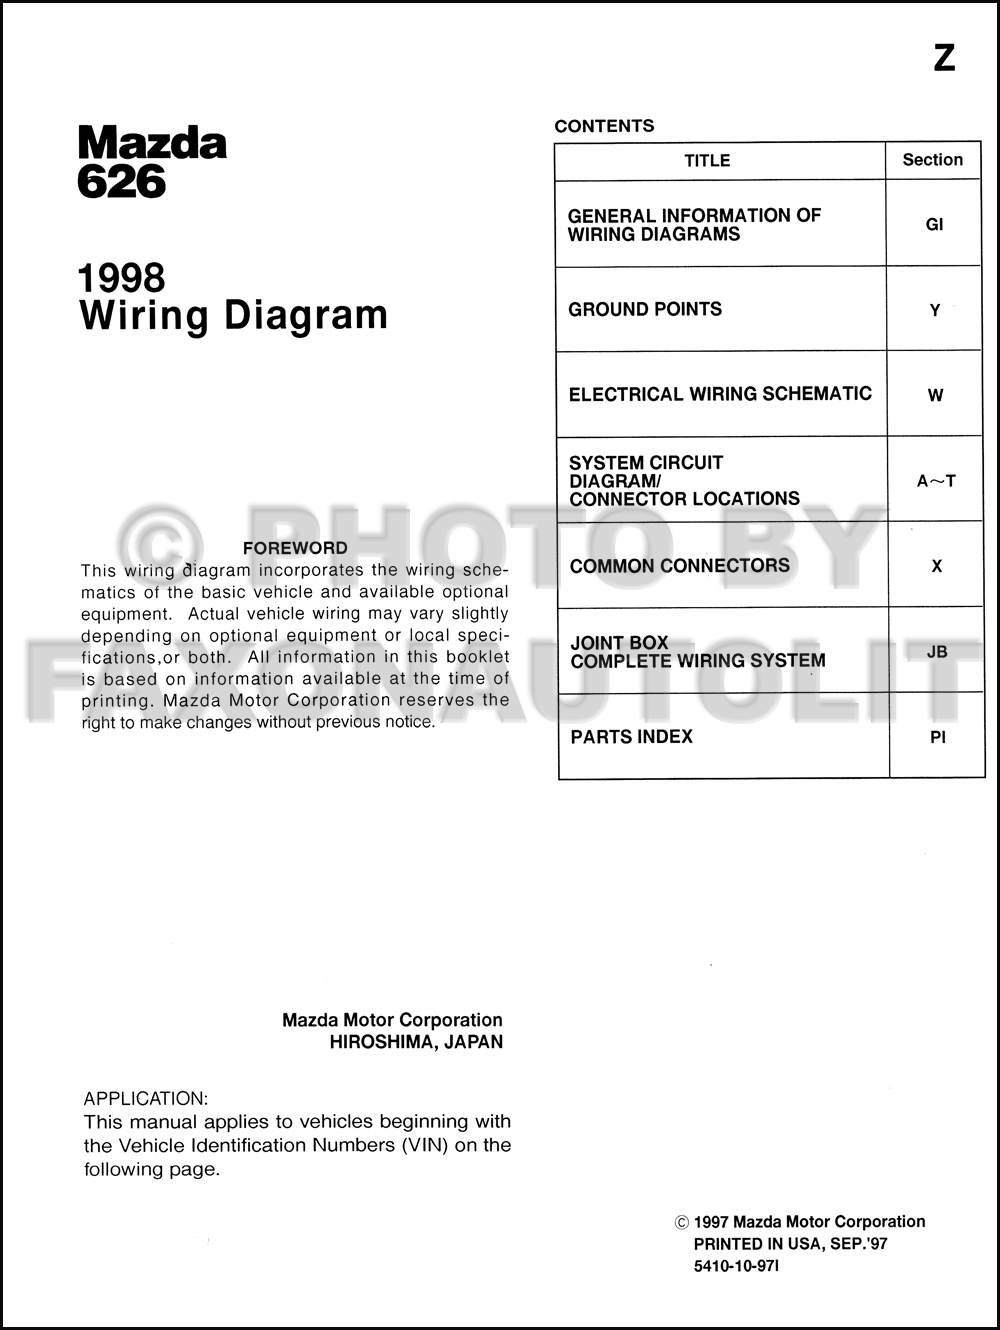 1998 mazda 626 wiring diagram manual original mazda 121 wiring diagram free mazda 6 wiring diagram free download schematic #9